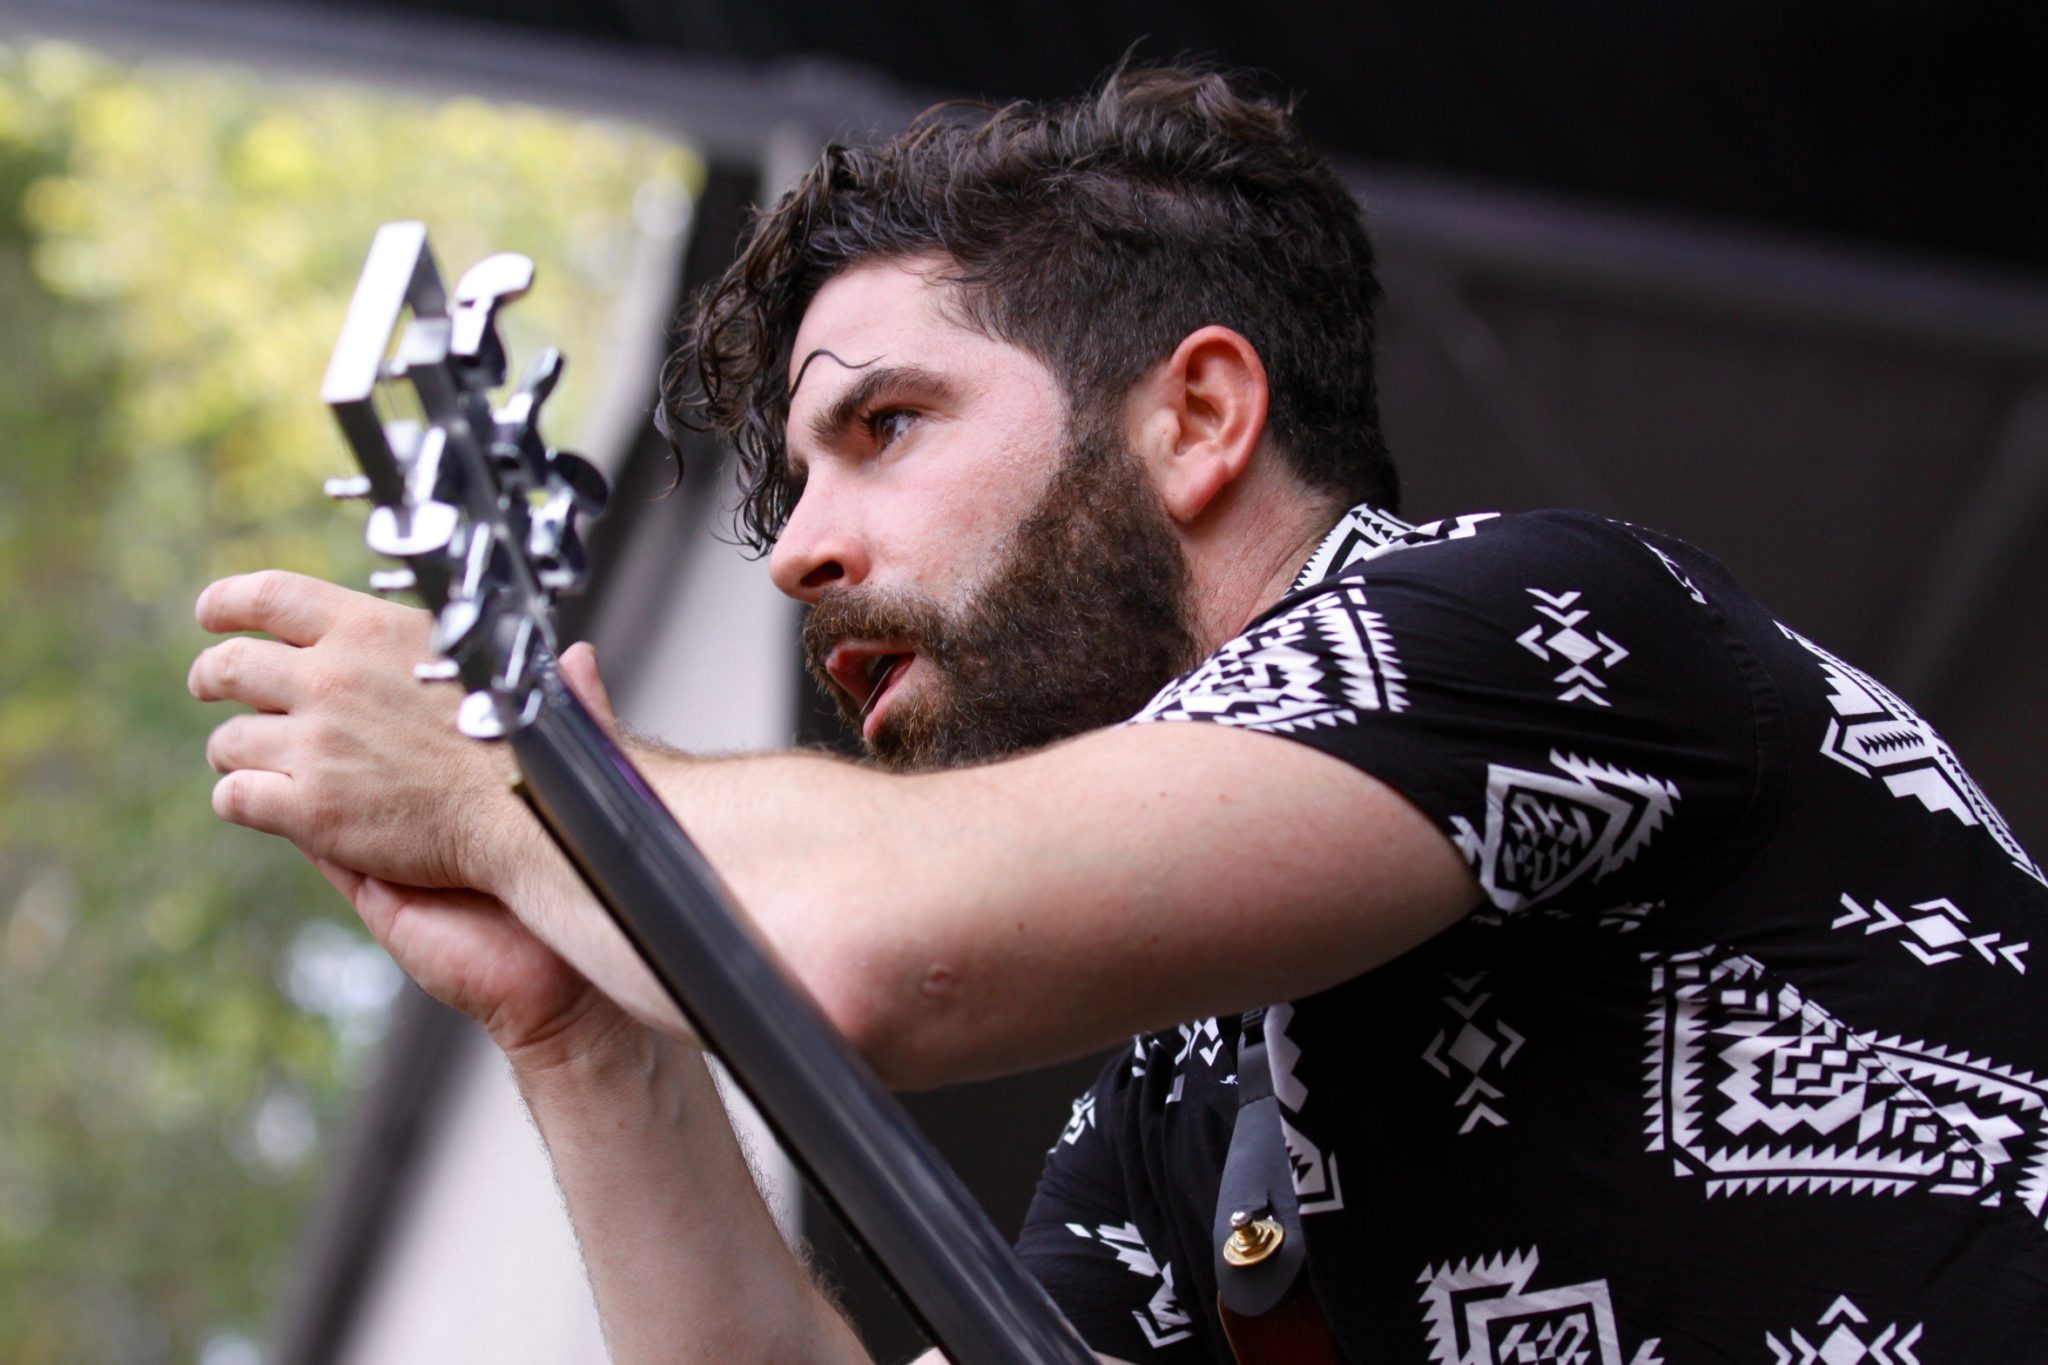 Yannis Philippakis of Foals live onstage at the 2016 Outside Lands Music Festival